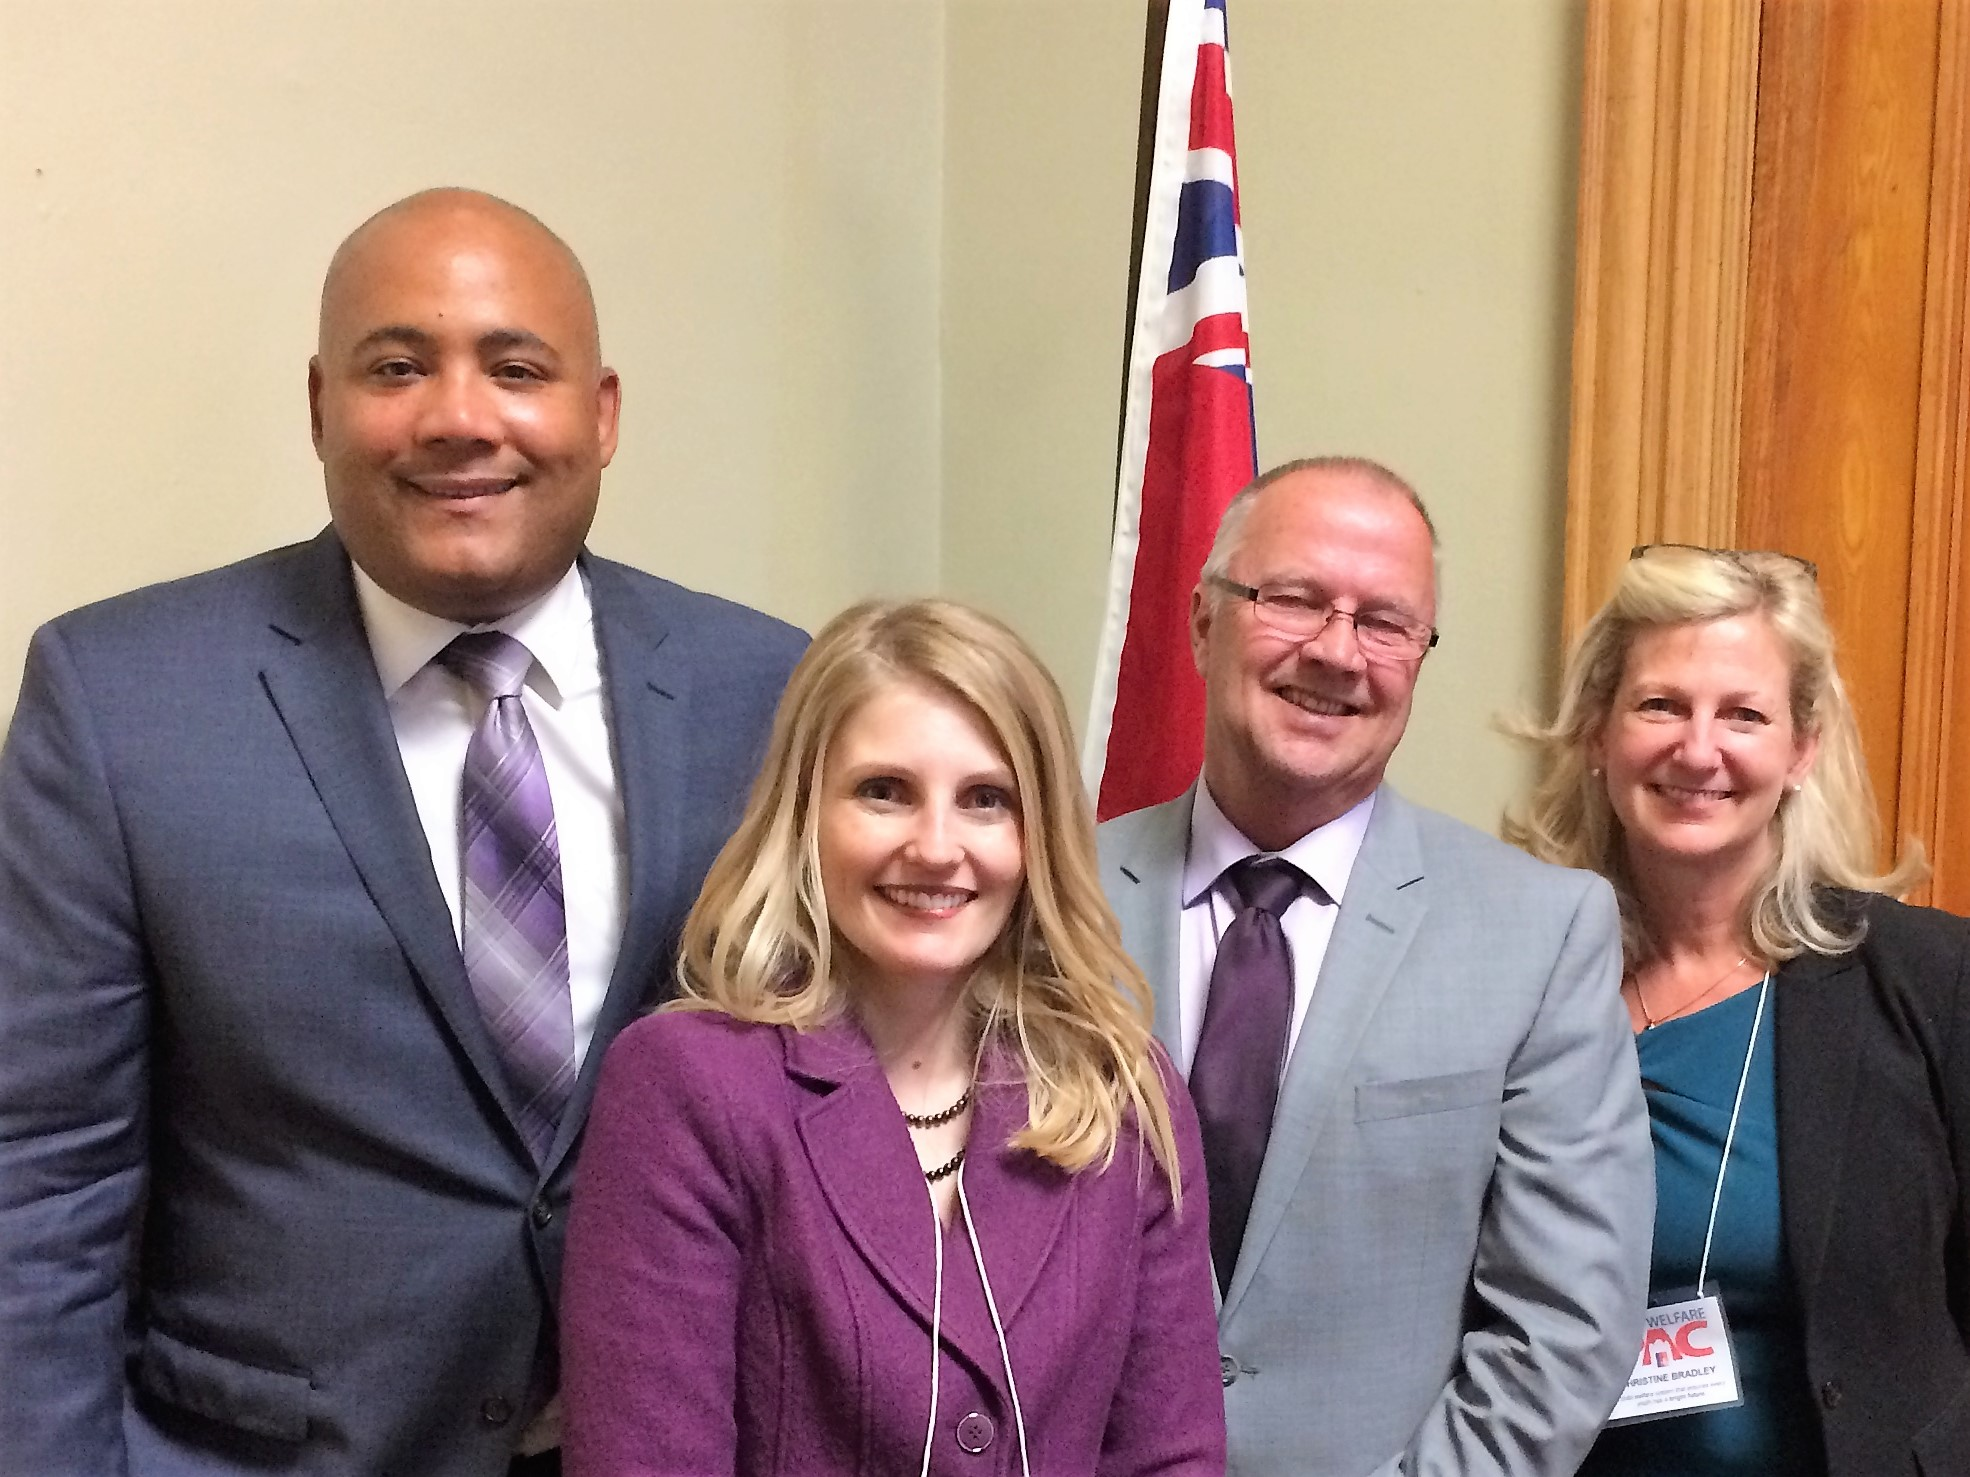 Meeting Hon Michael Coteau - 2017